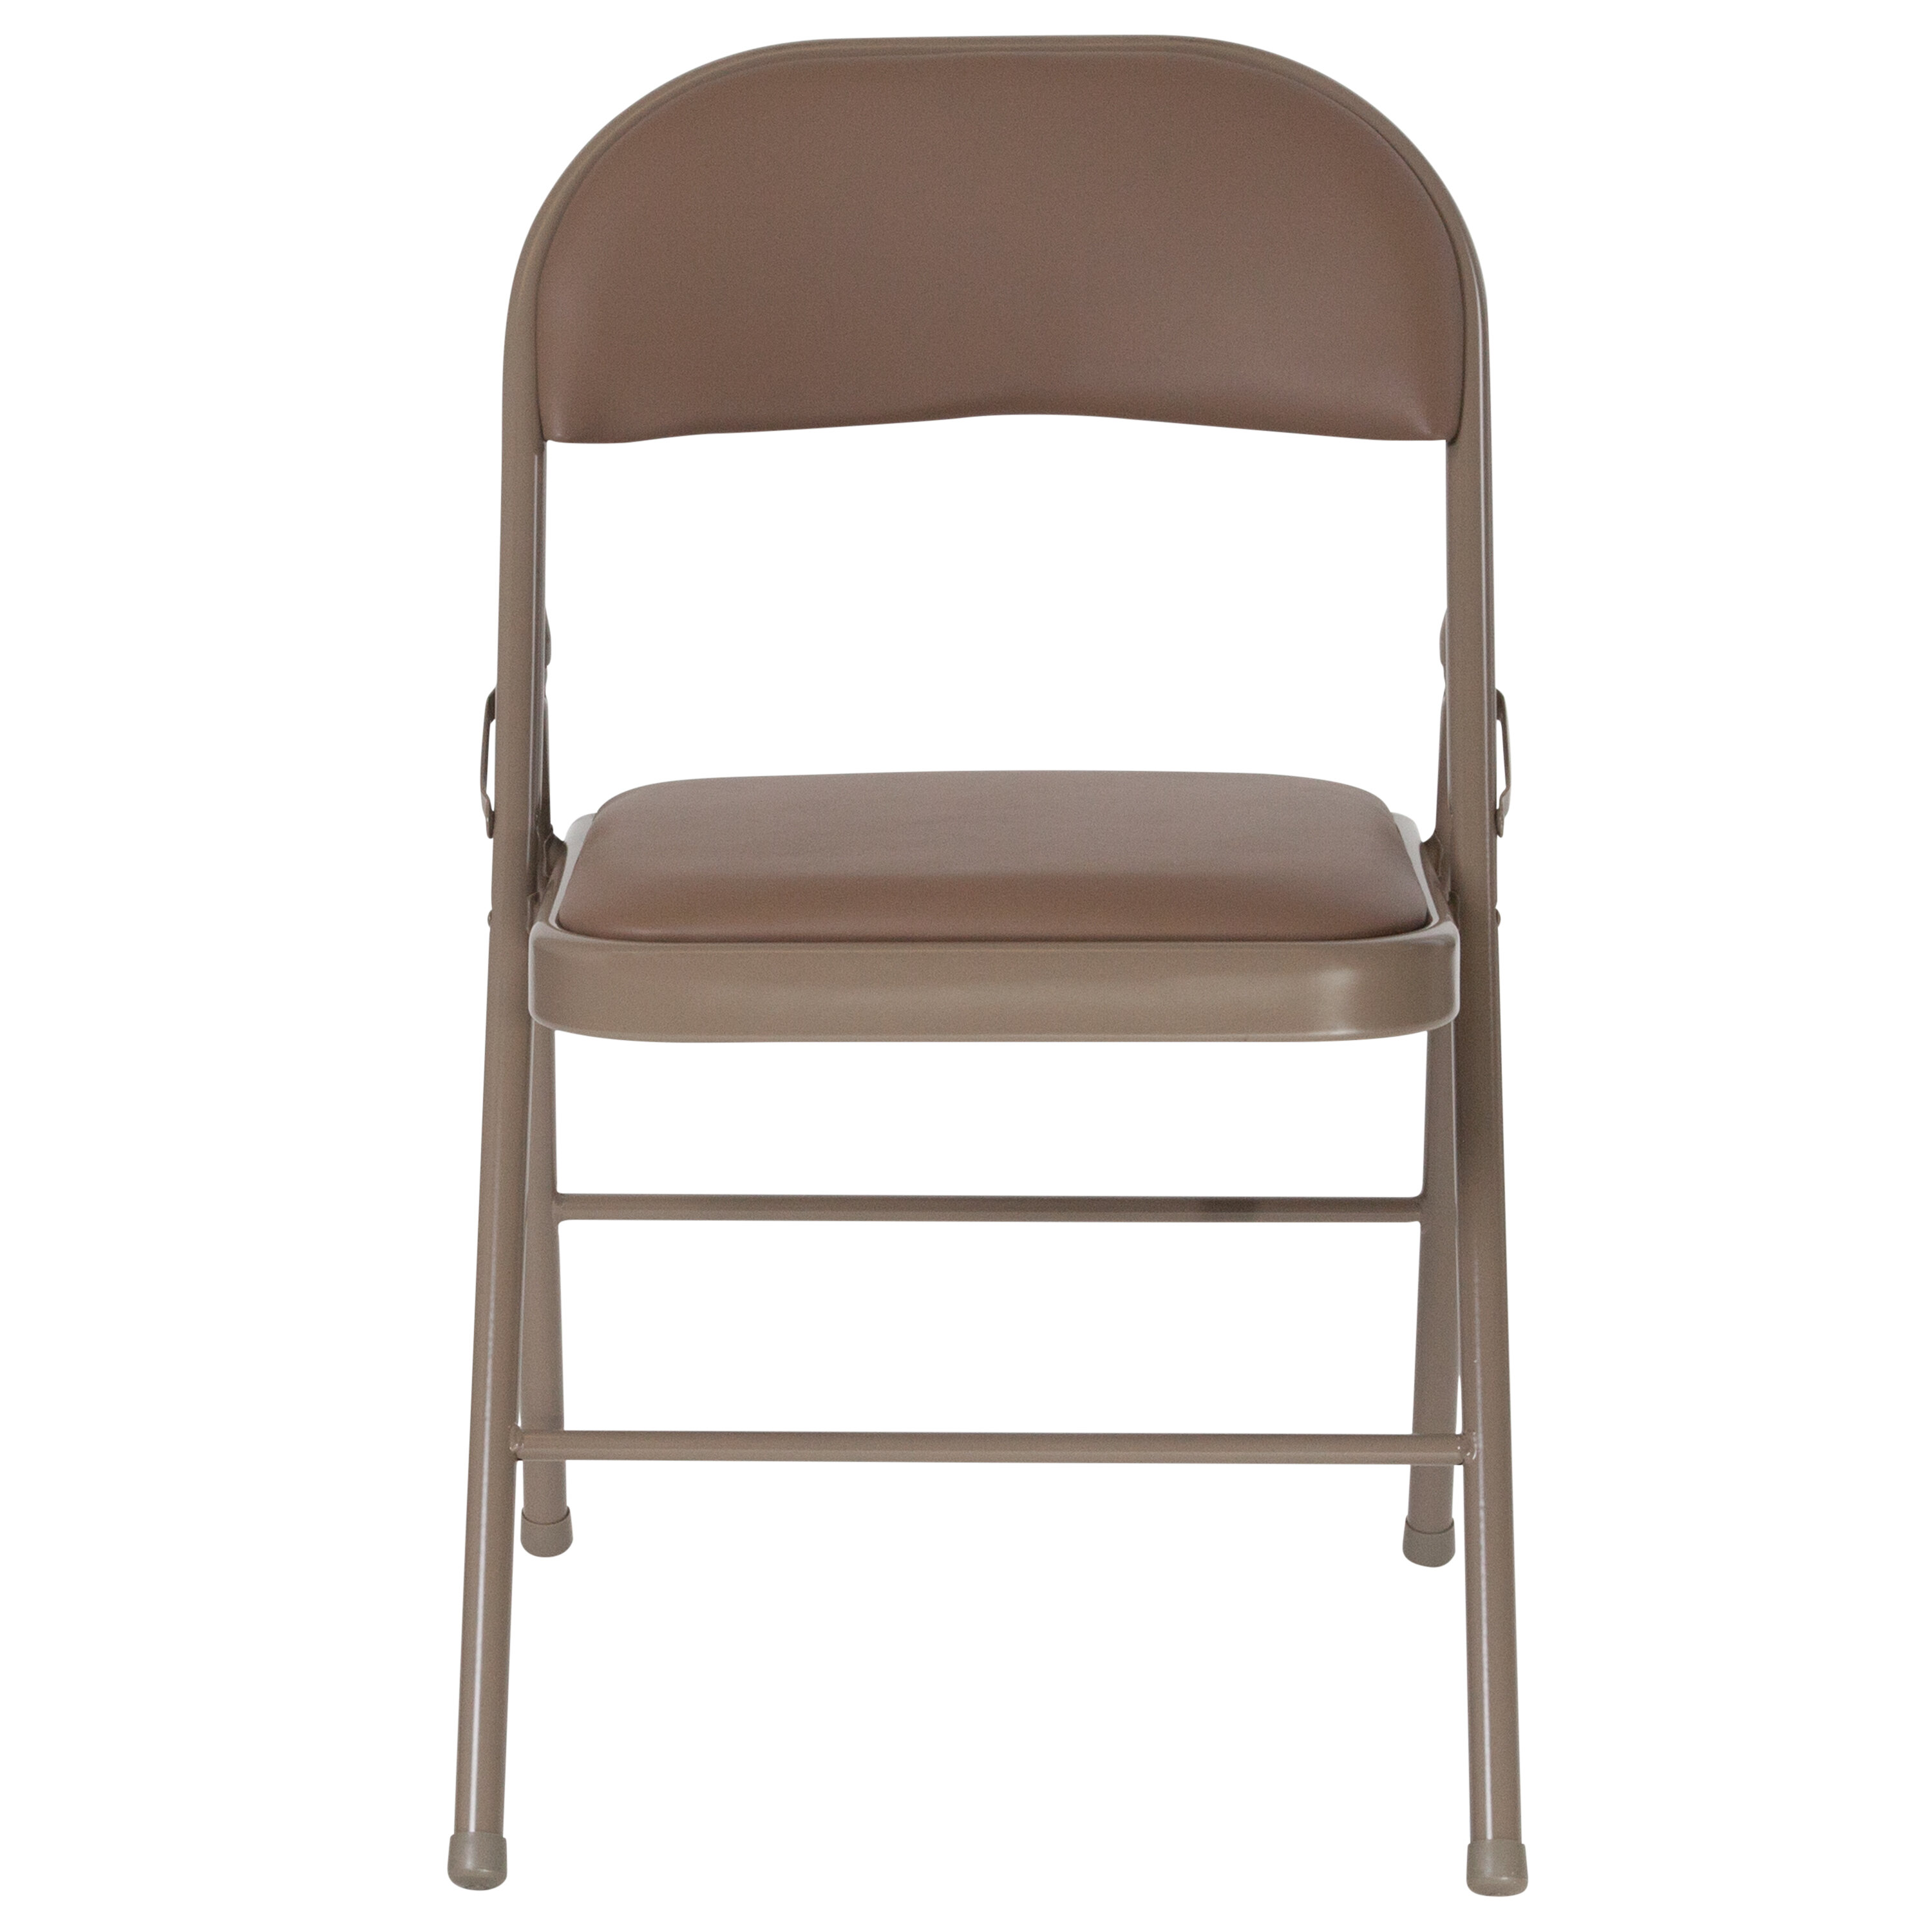 metal padded folding chairs. Metal Padded Folding Chairs I